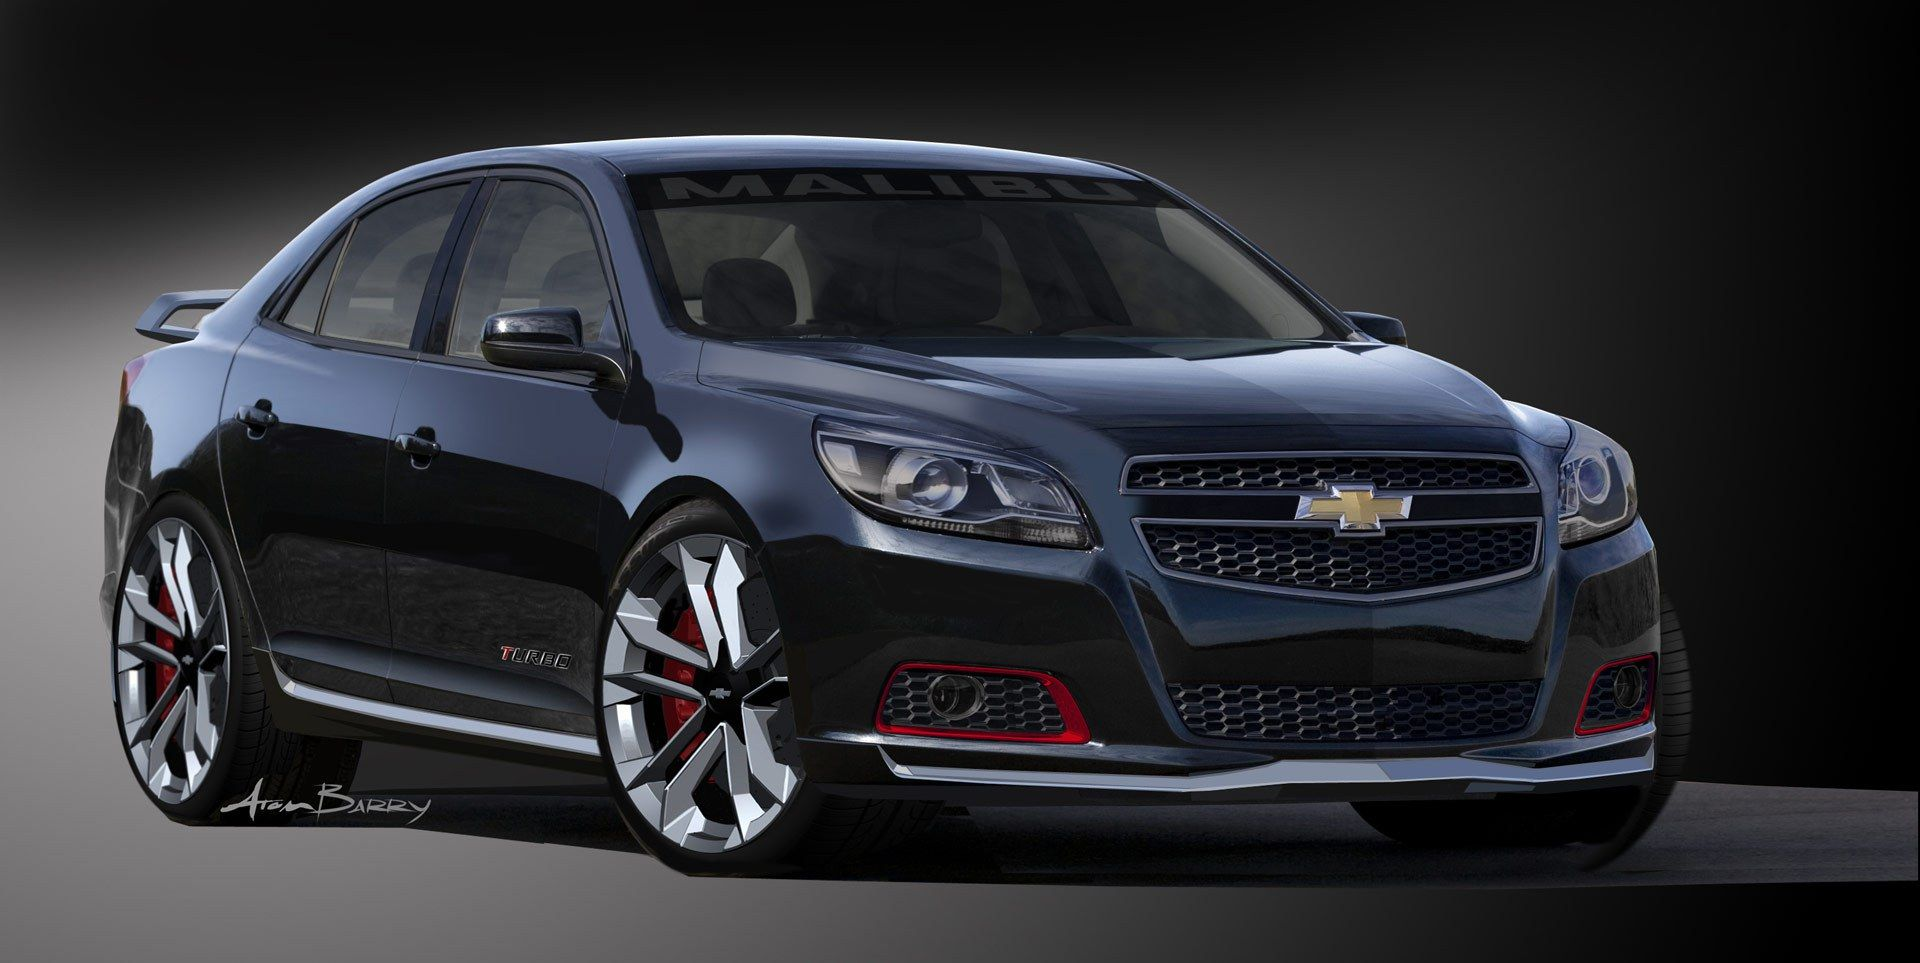 52 The 2020 Chevrolet Malibu Photos